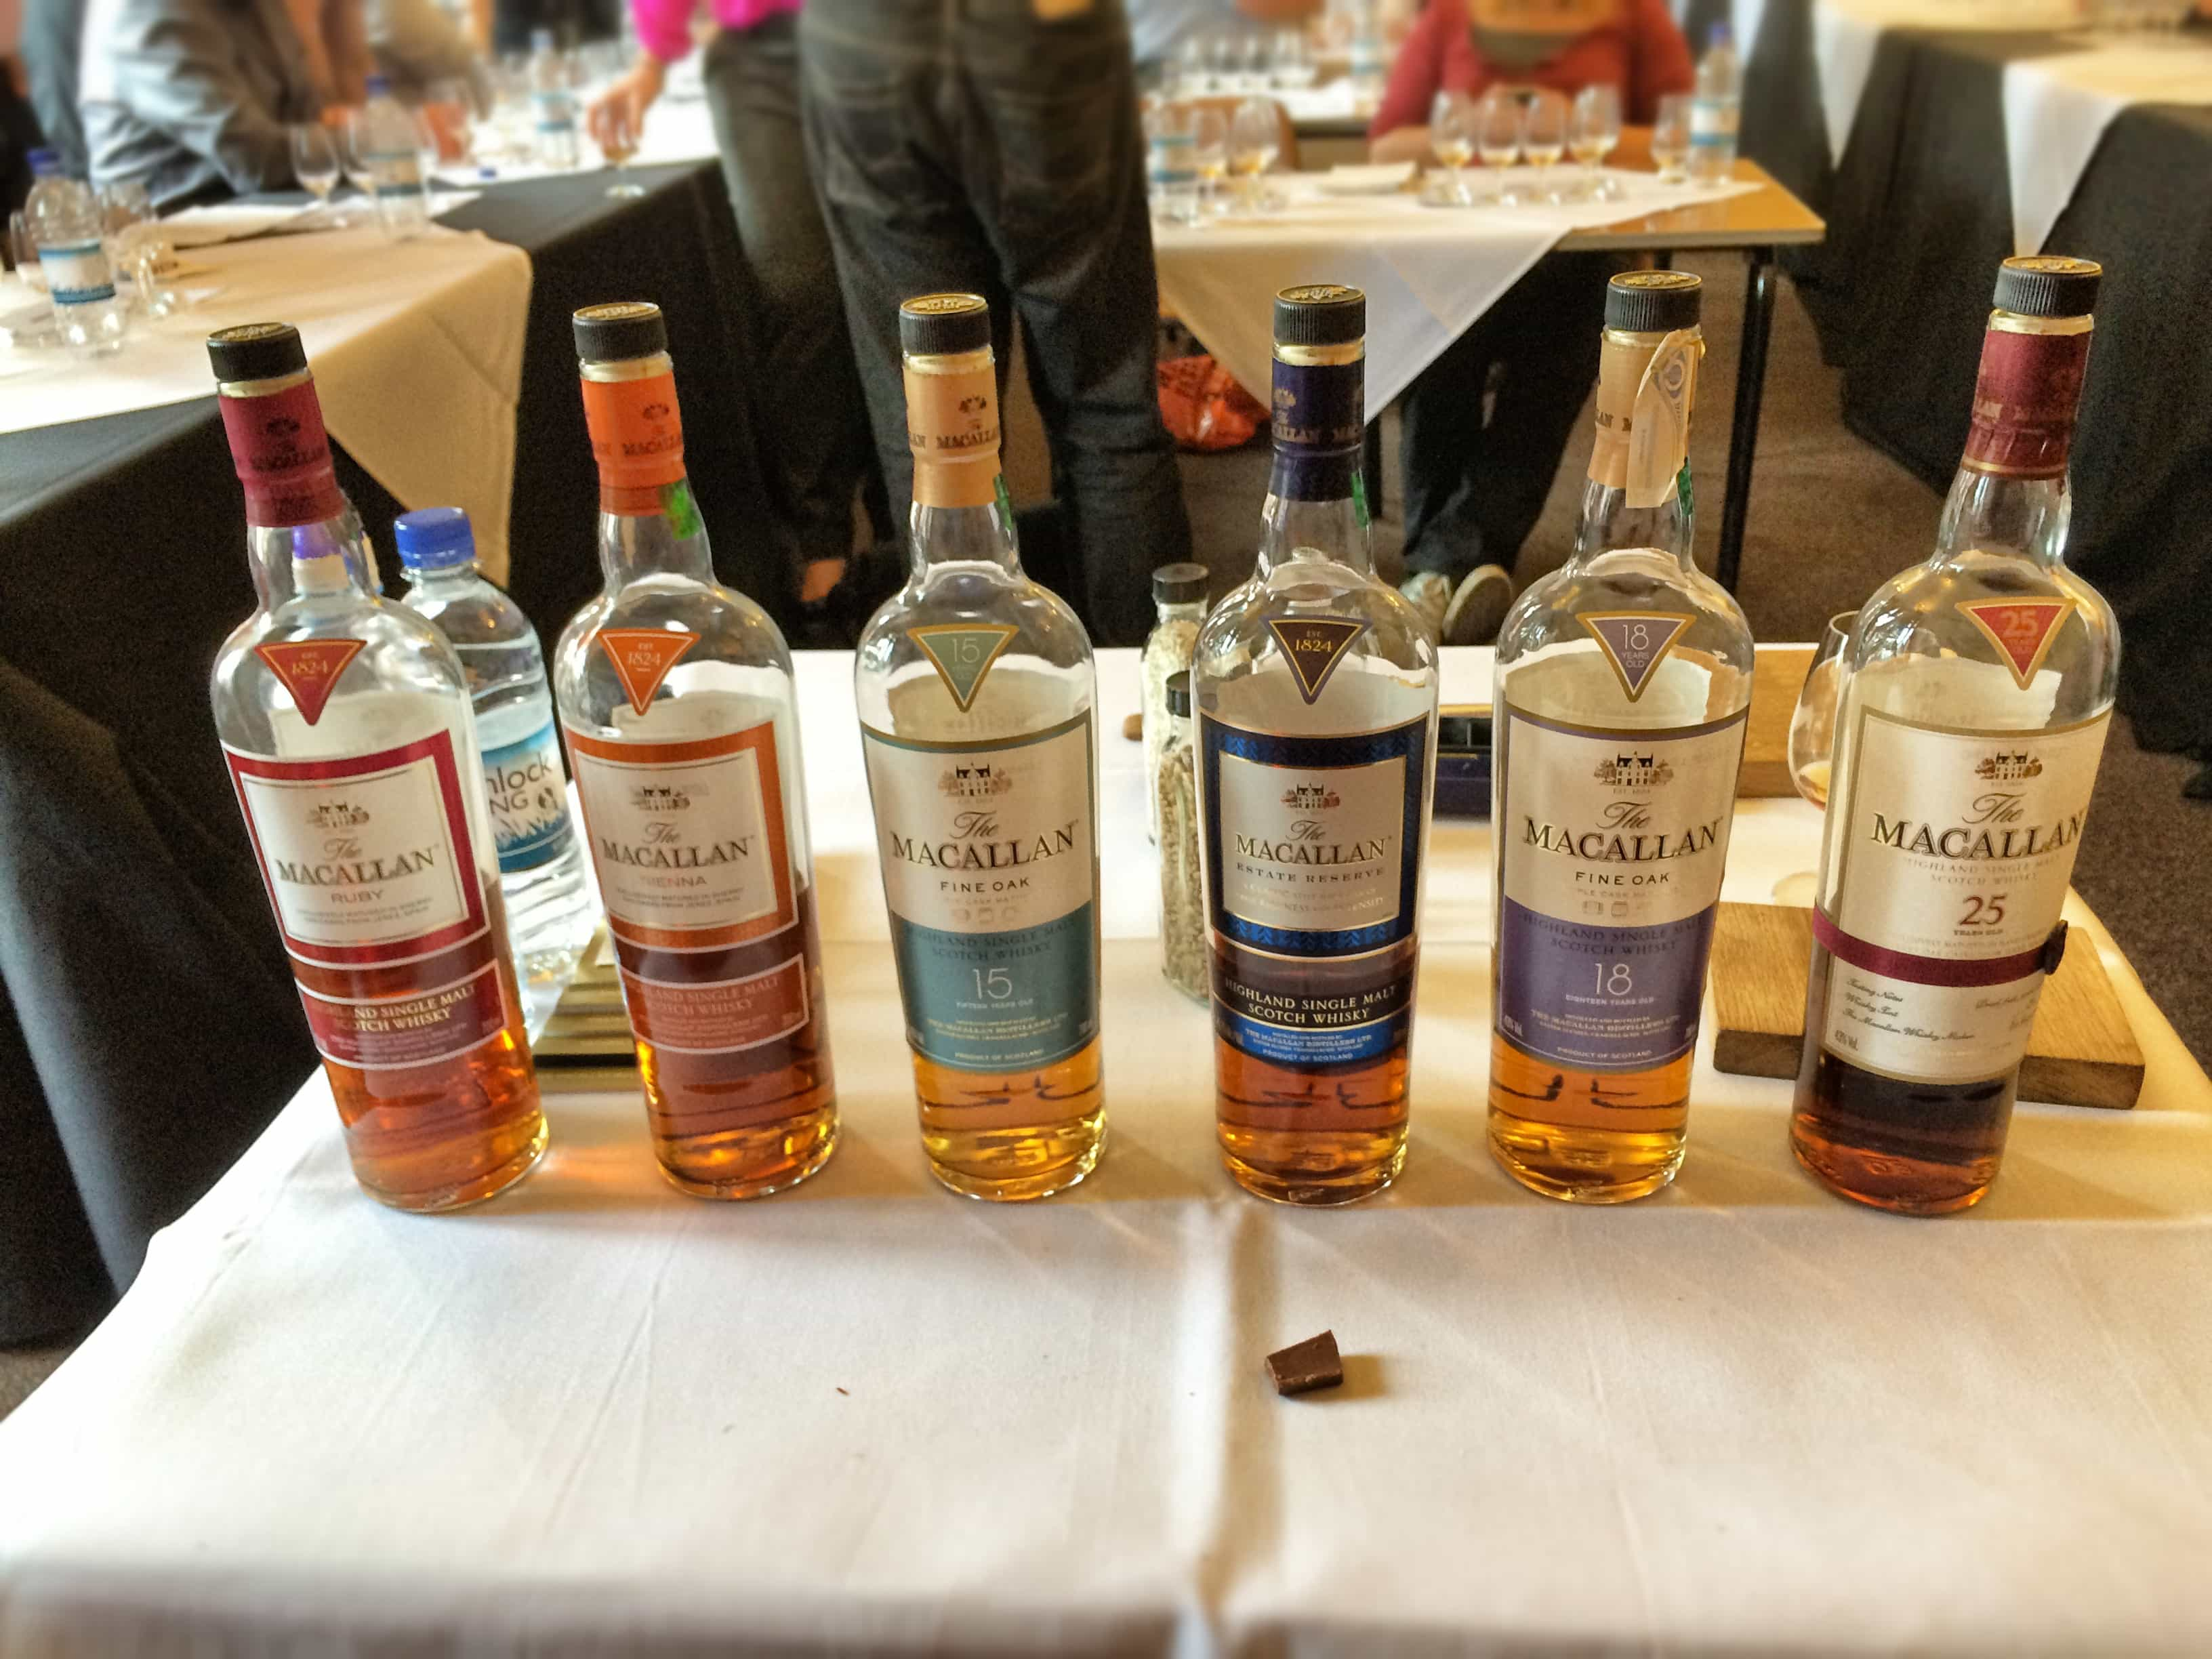 More Macallans at the masterclass